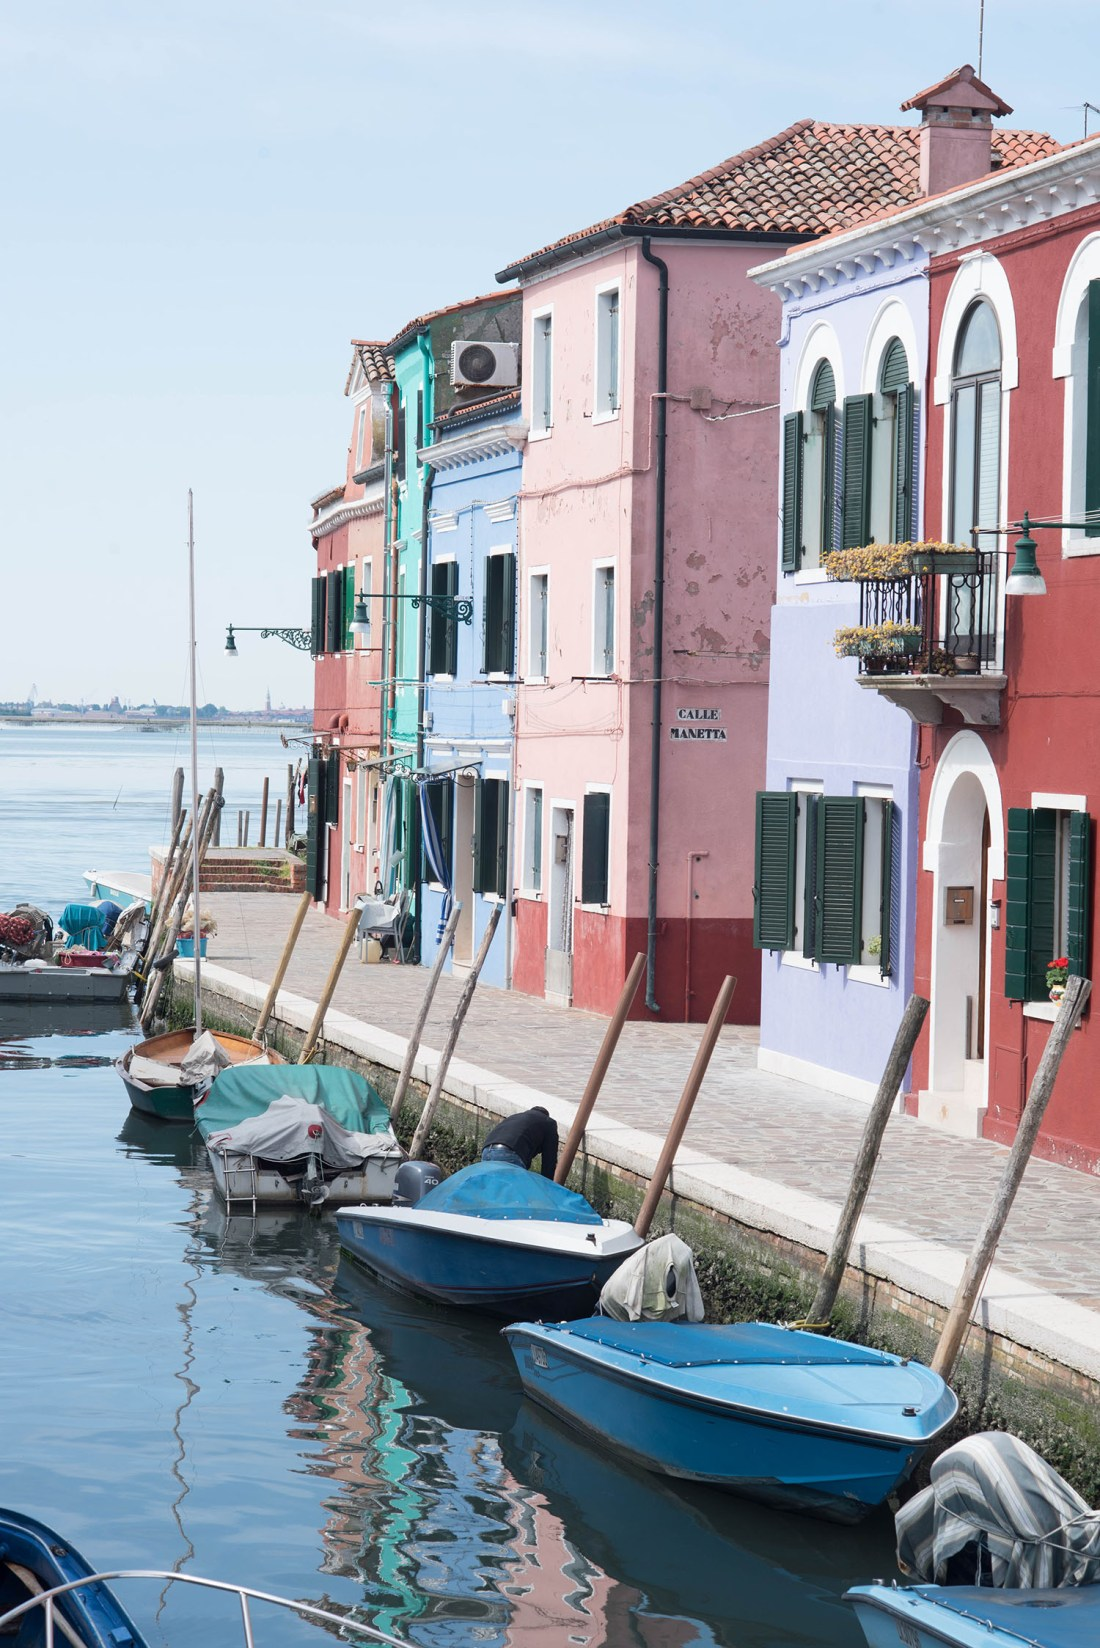 Pastel houses line the canal in Burano, Italy, captured by travel blogger Cee Fardoe of Coco & Vera